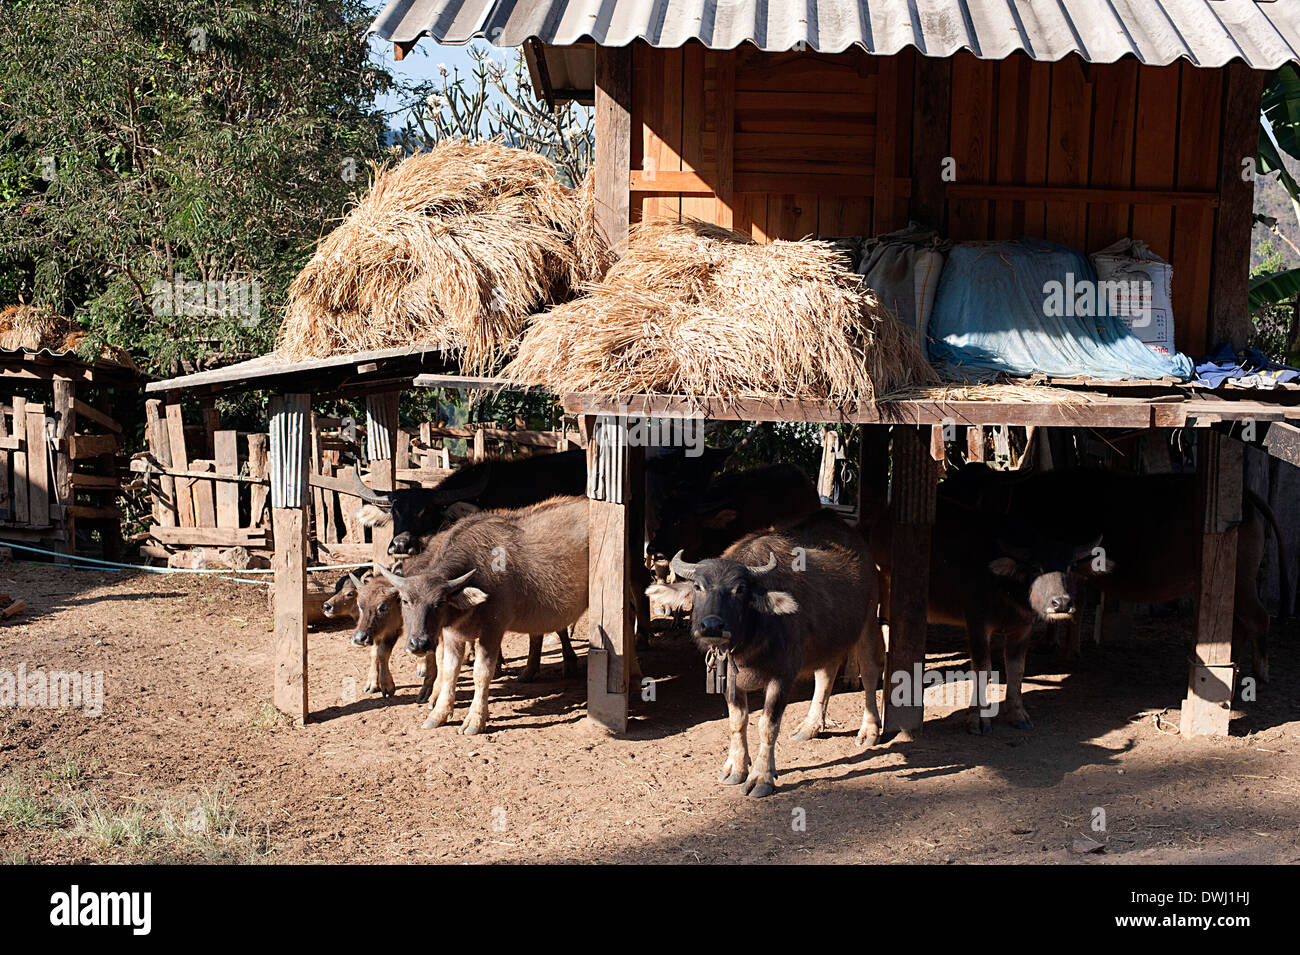 Buffaloes shelter and keep cool under the house away from the sun. - Stock Image